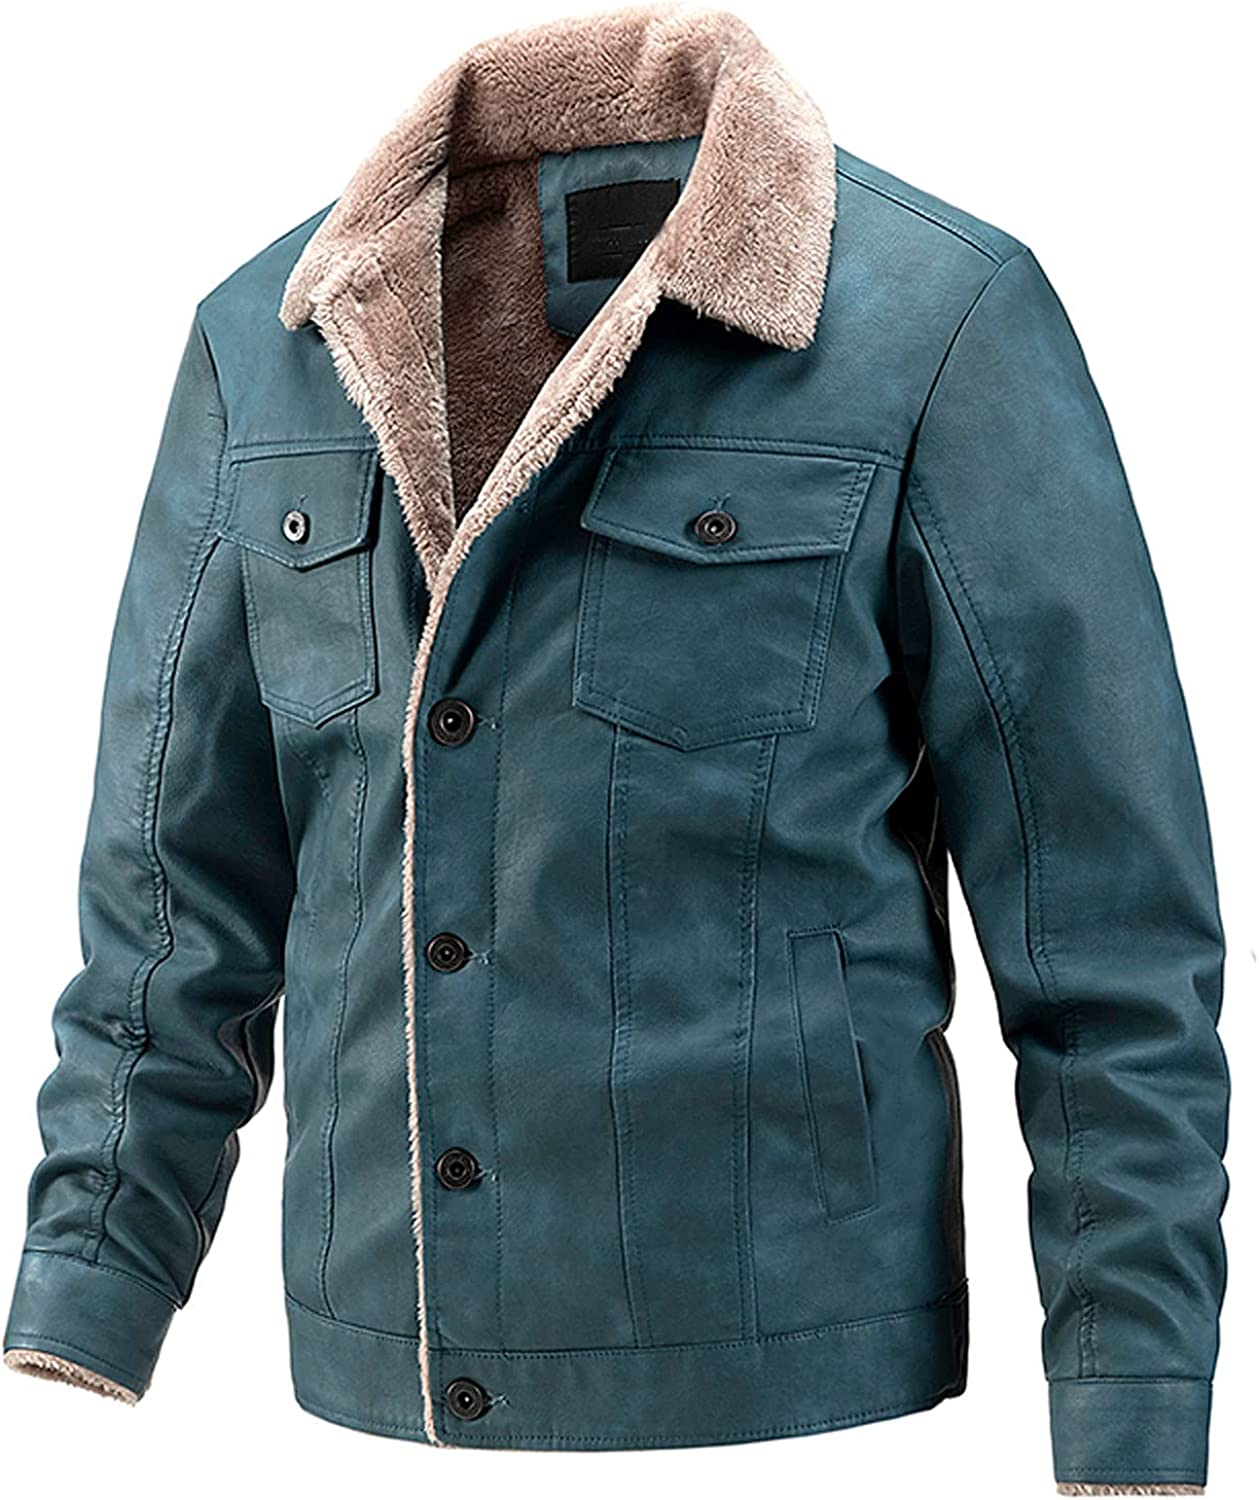 Beshion Winter Warm Coats for Men Casual Lined Jacket Fur Collar Quilted Coat Pockets Jackets Button Biker Overcoat